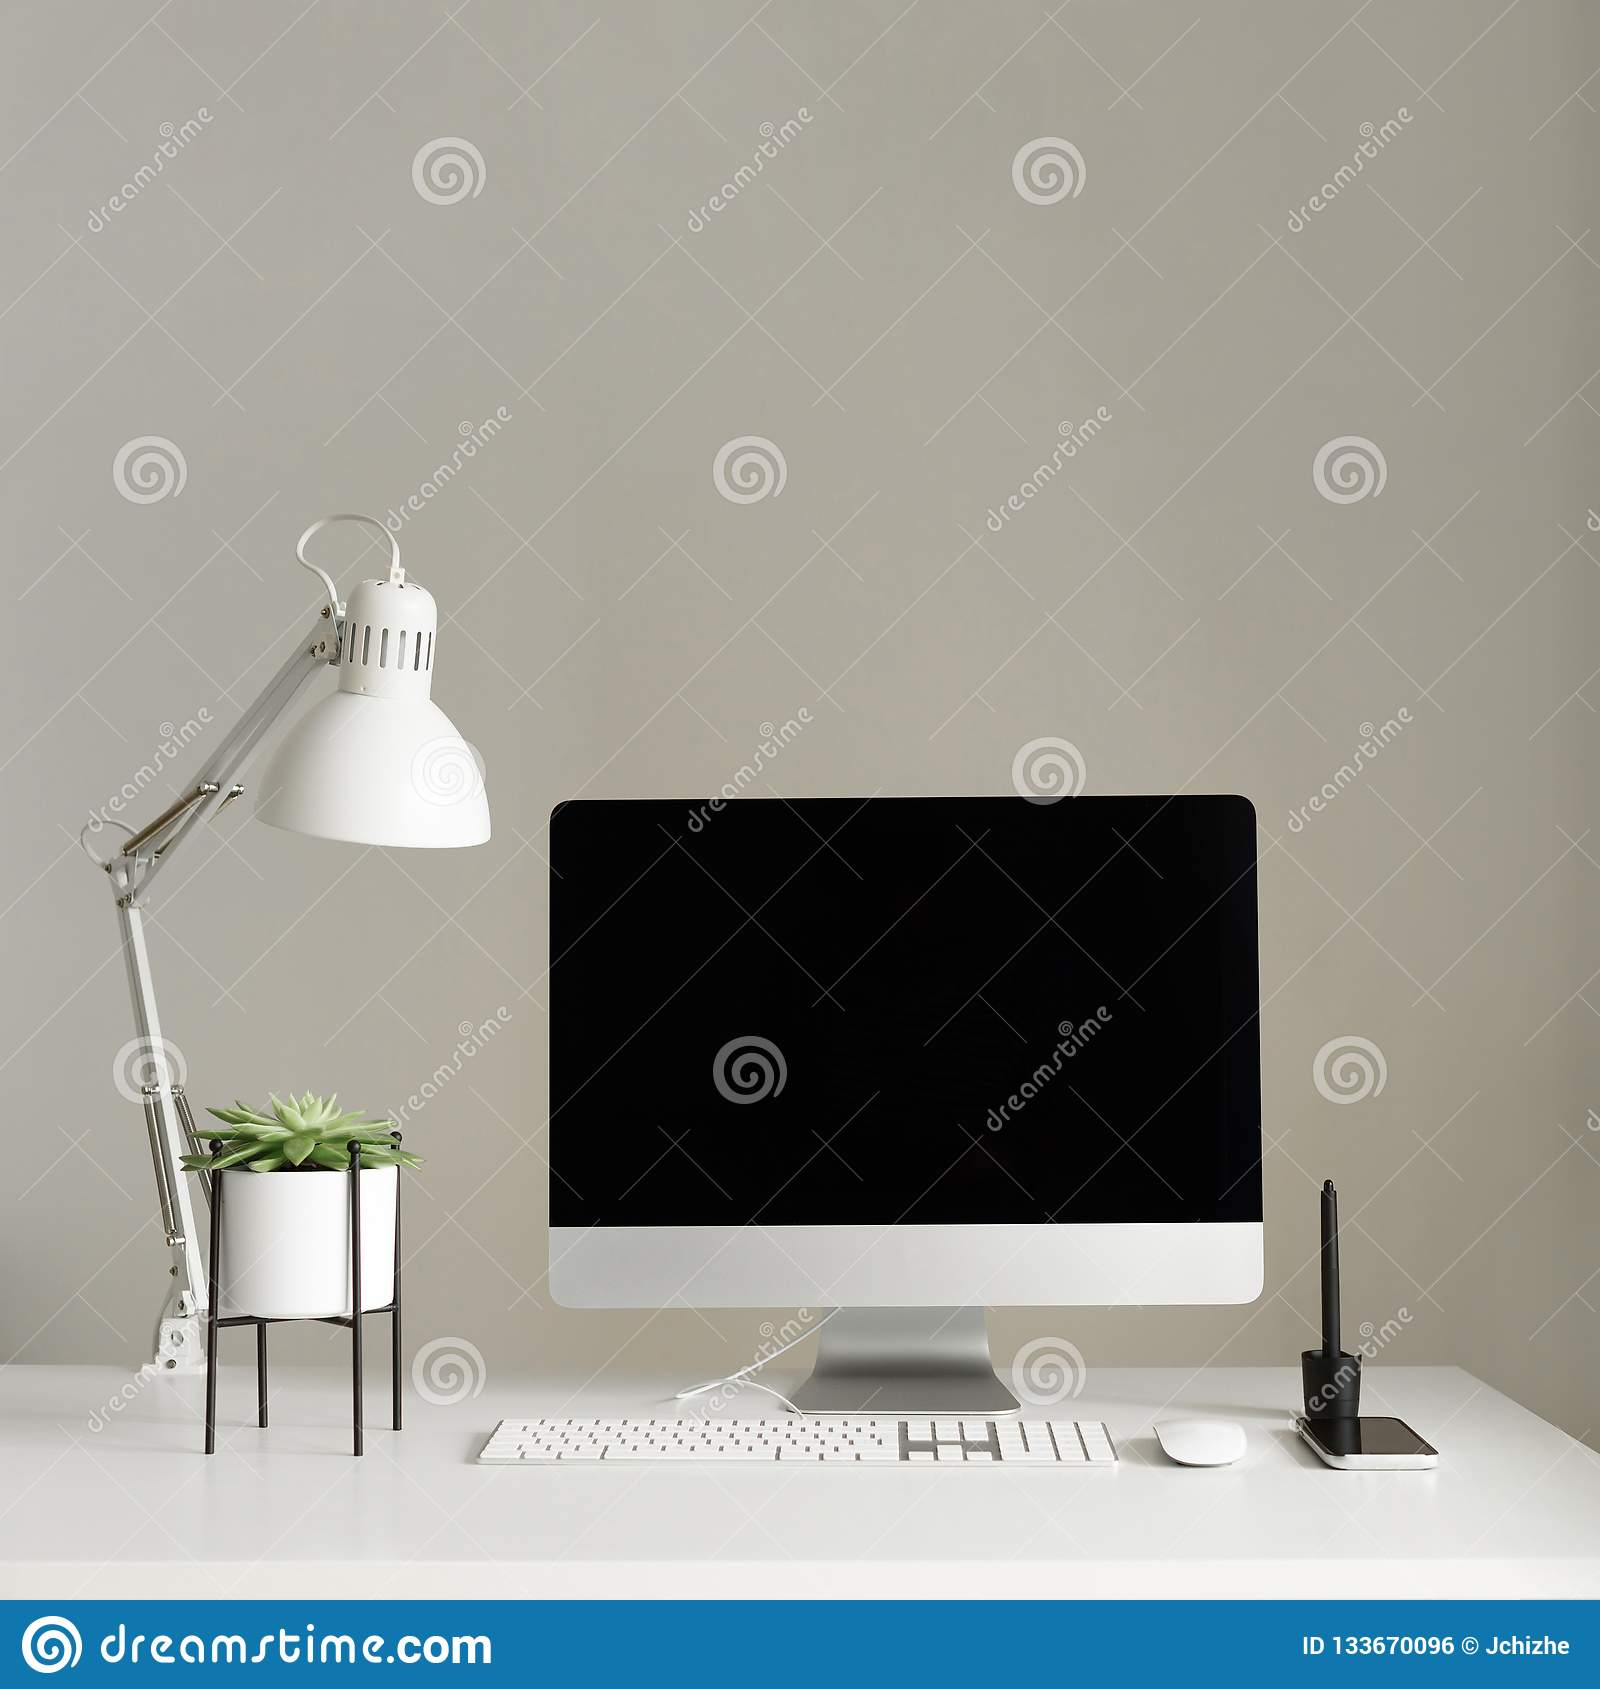 Keyboard Mouse Computer Display With Black Blank Screen